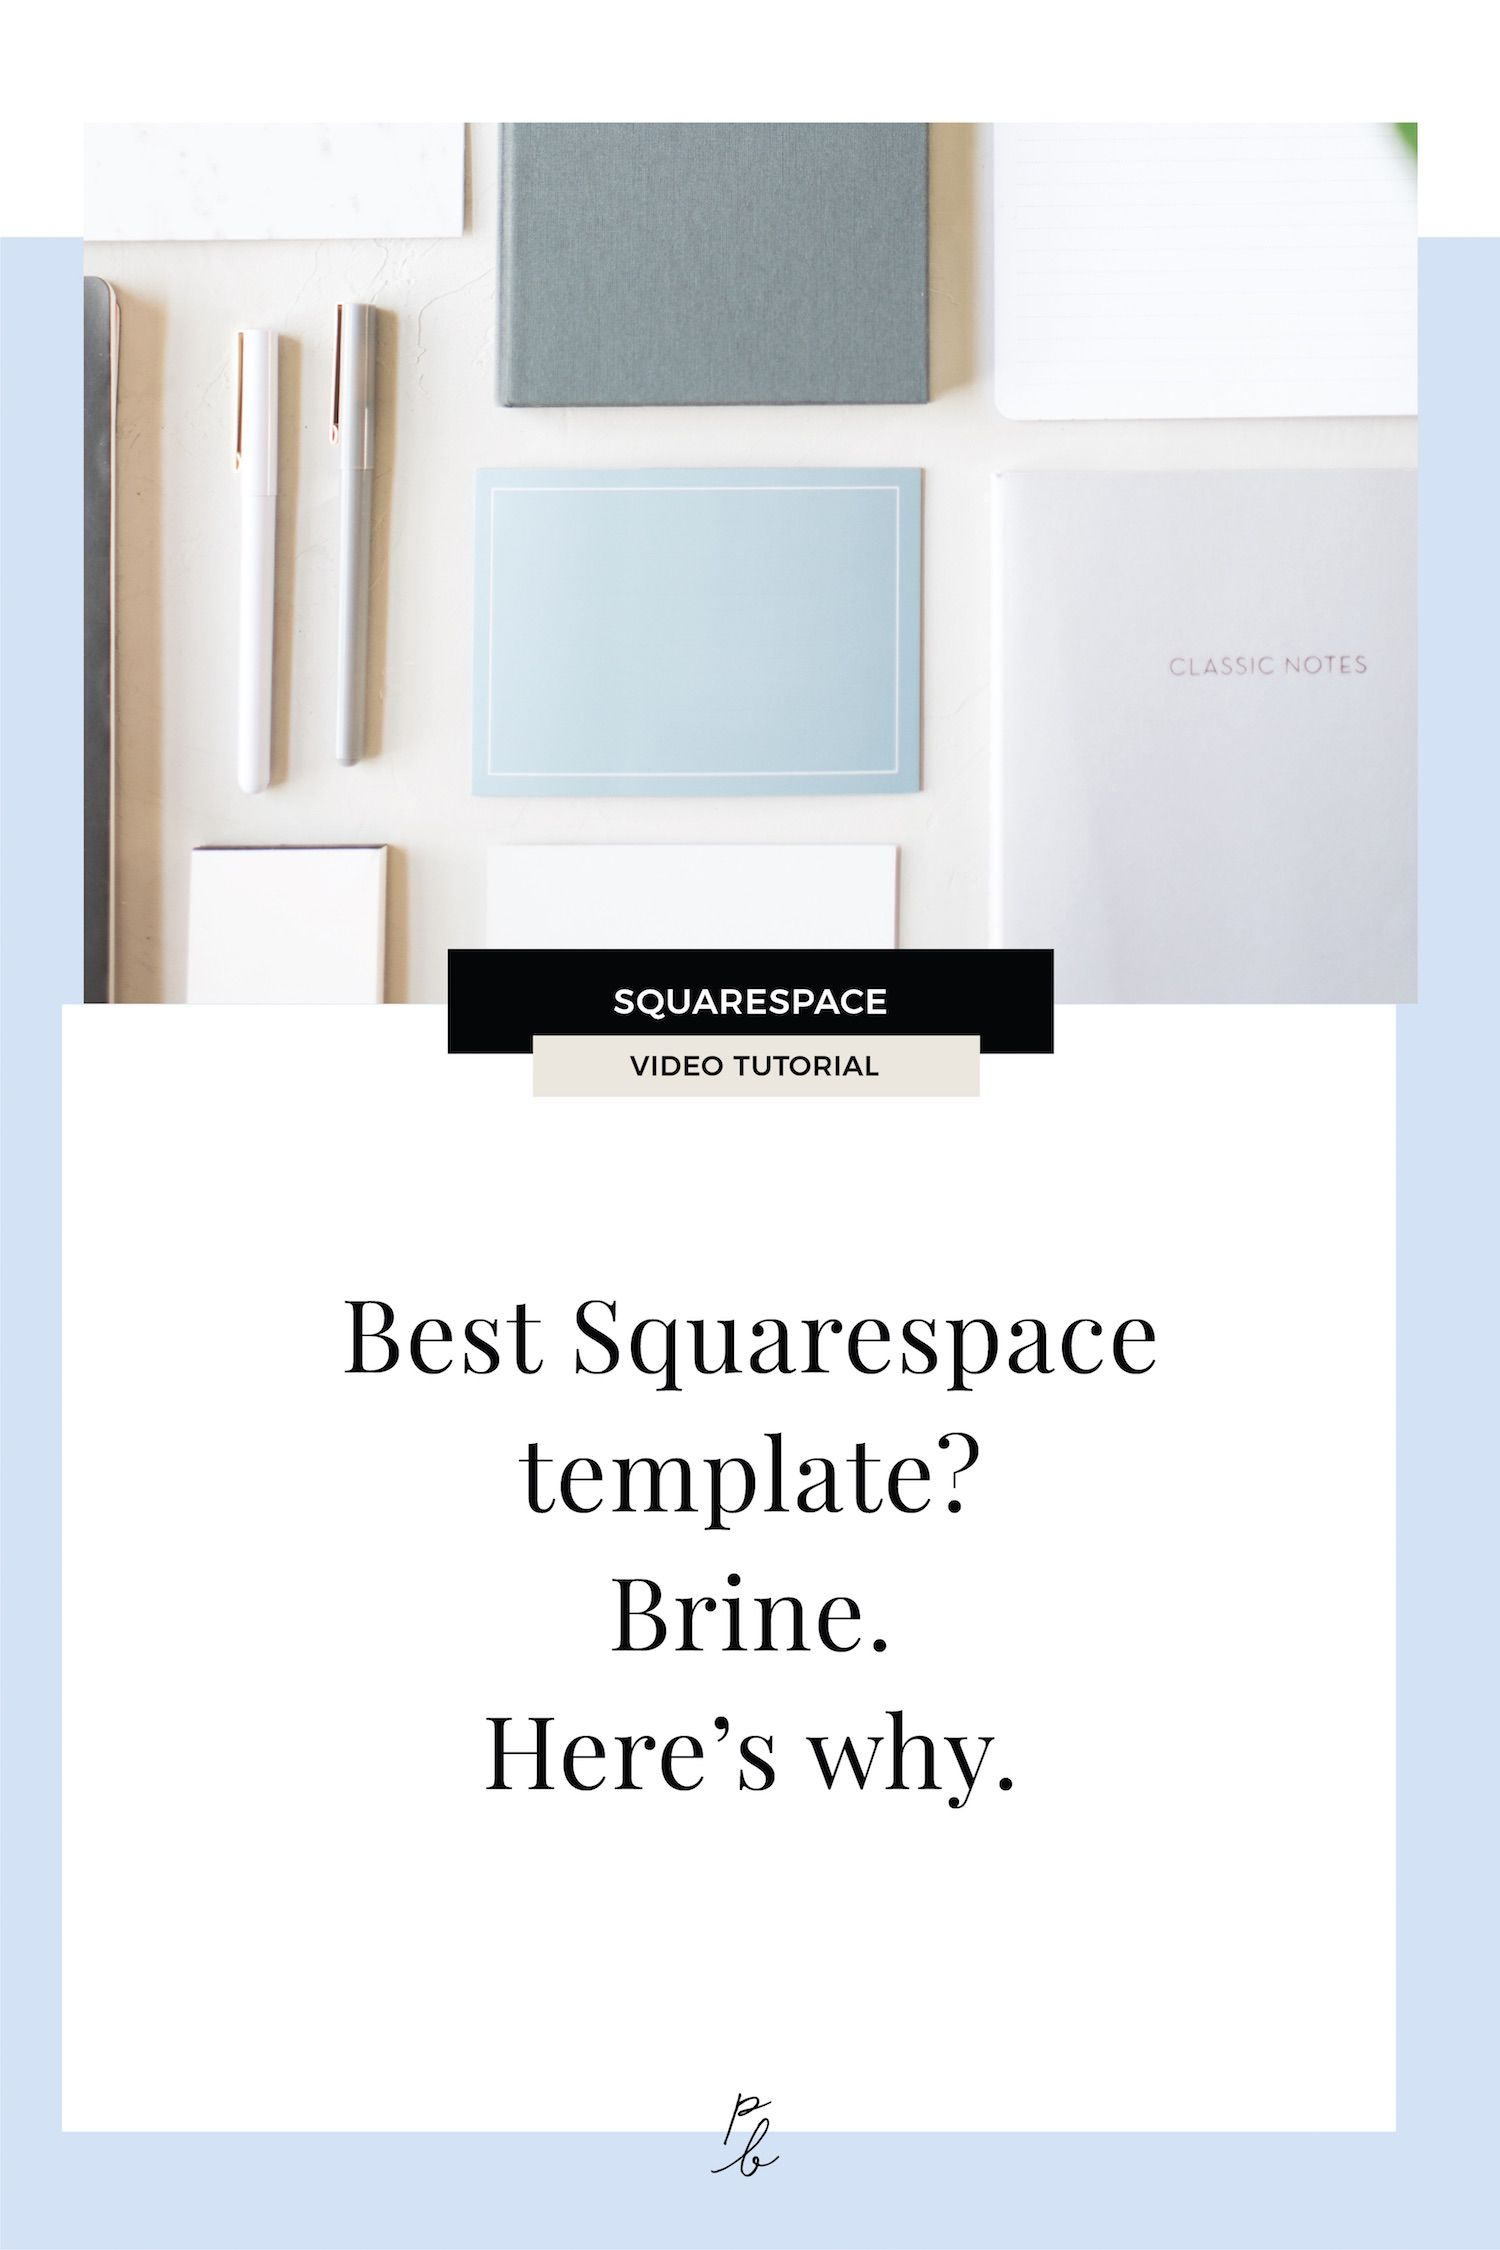 What Is The Best Squarespace Template Brine Here S Why With